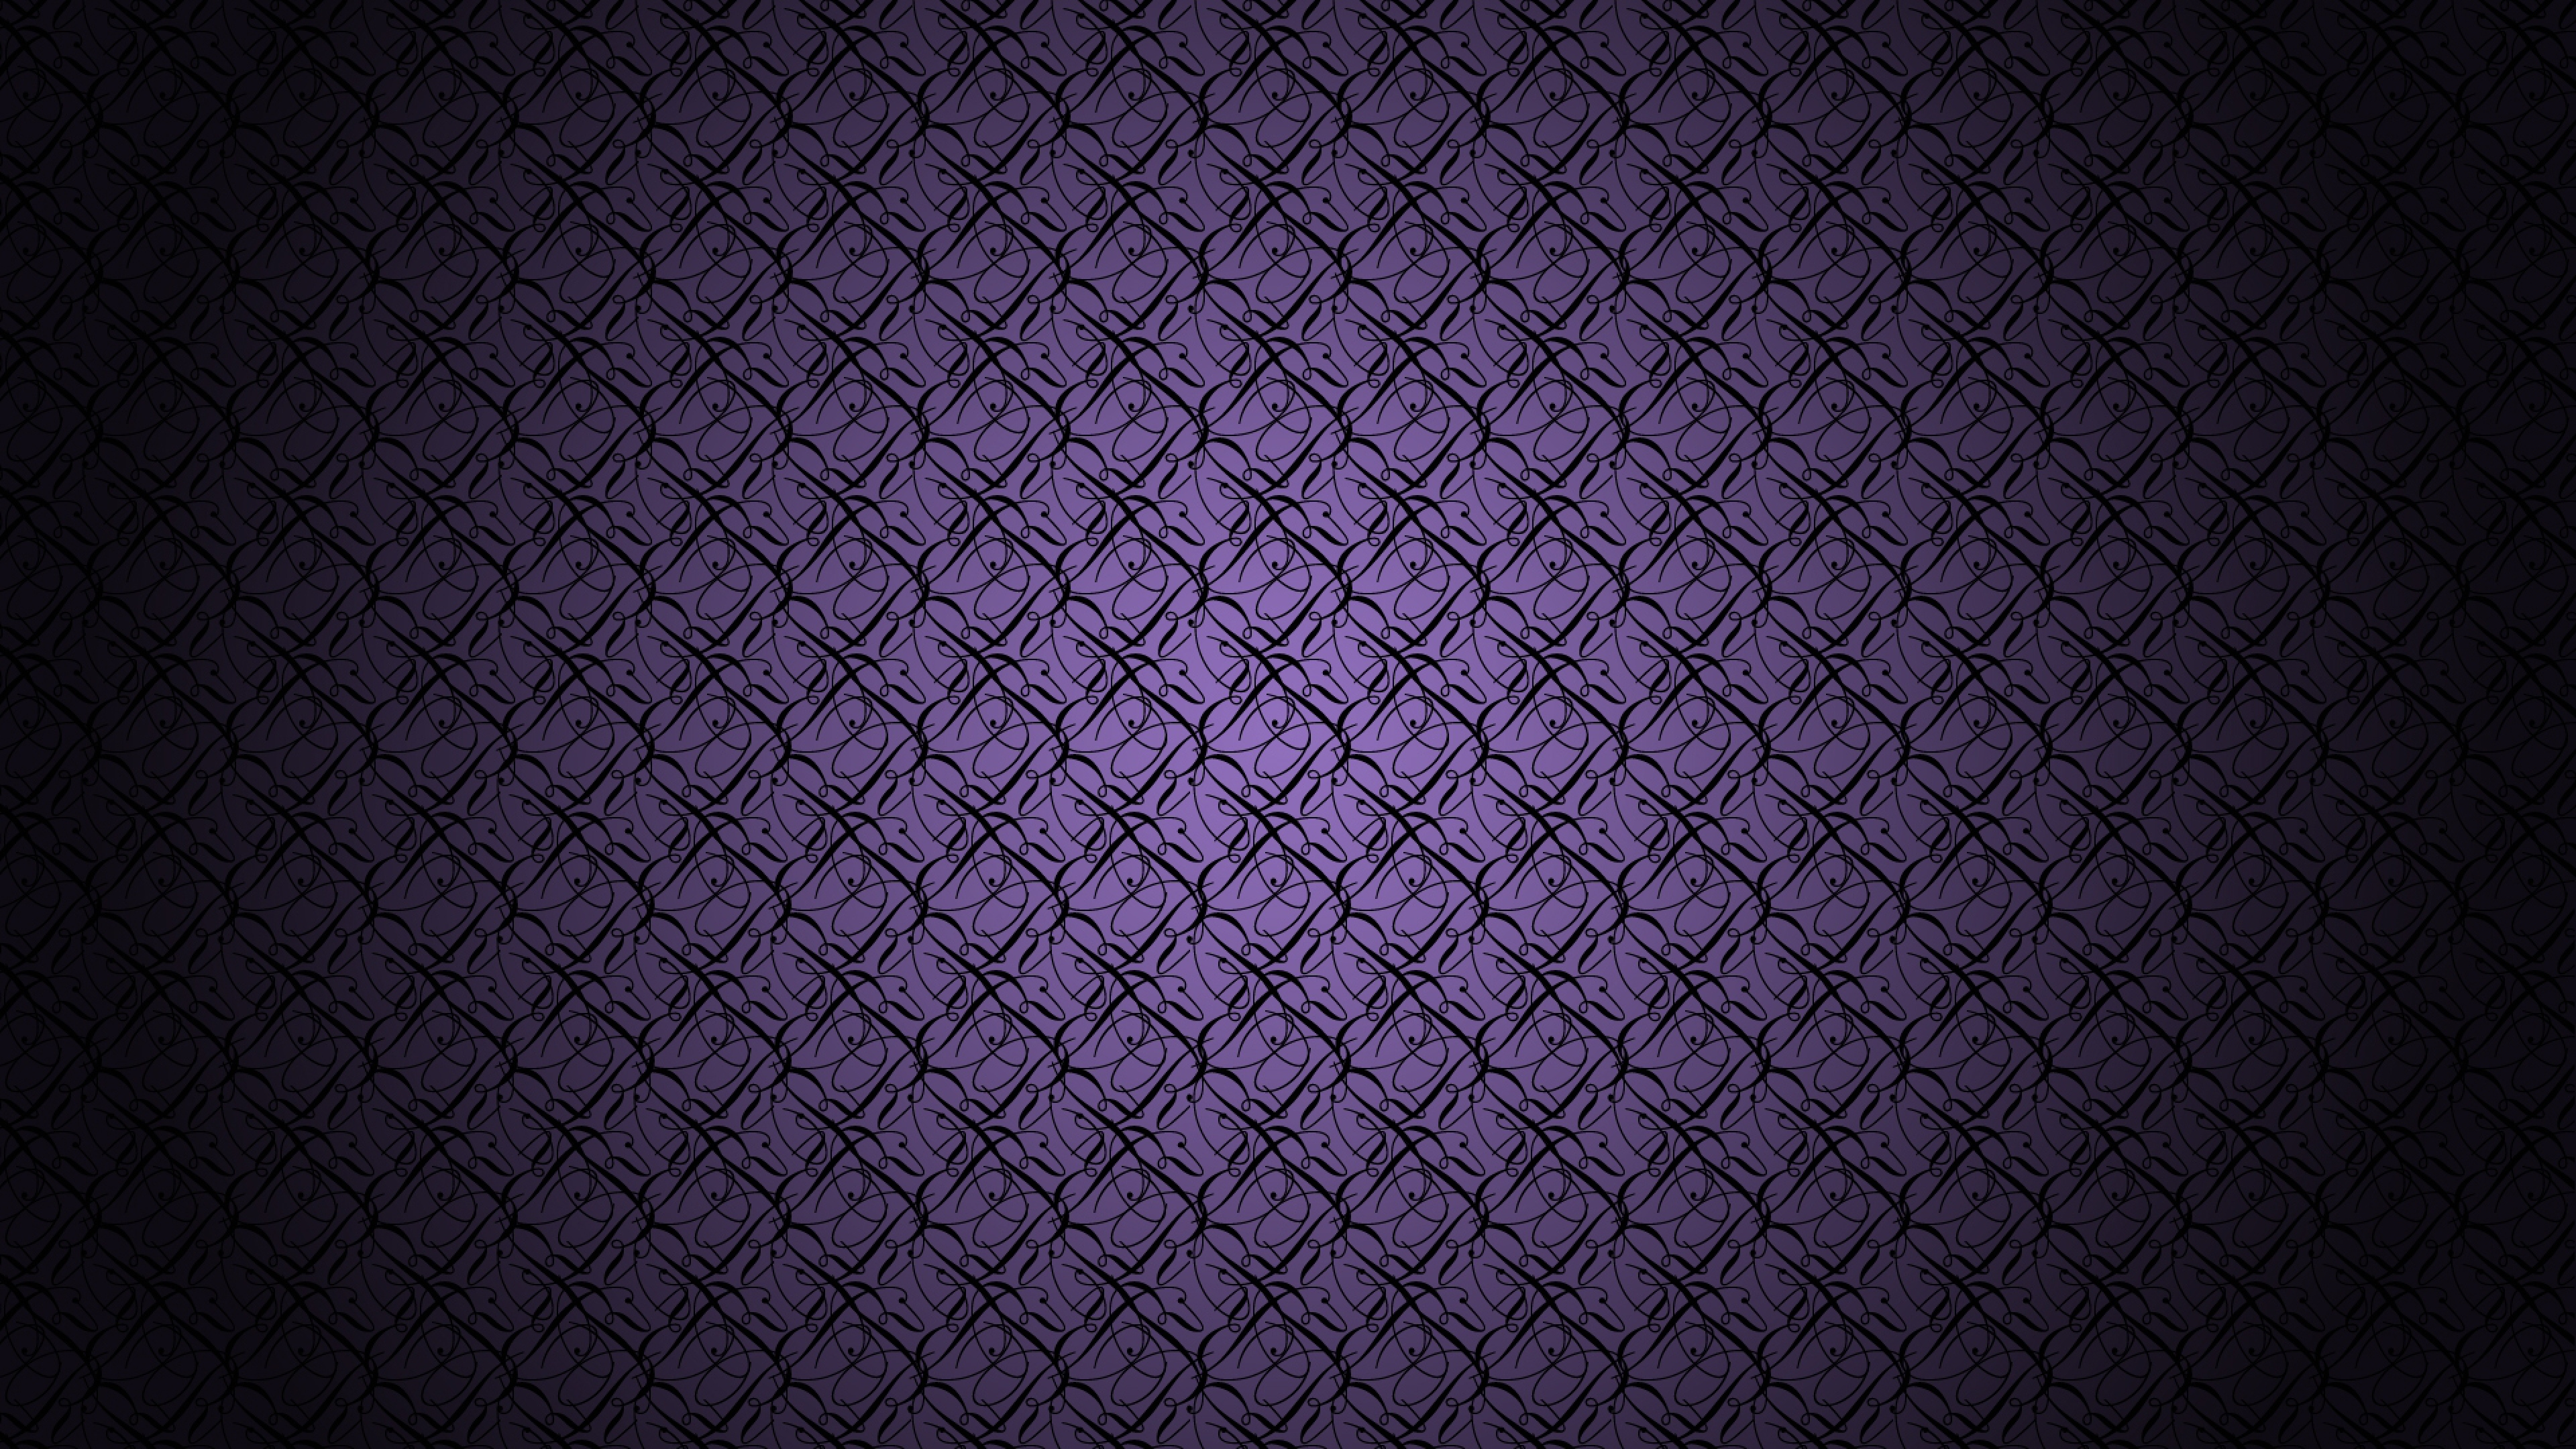 Ultraviolet Backgrounds Paterns,